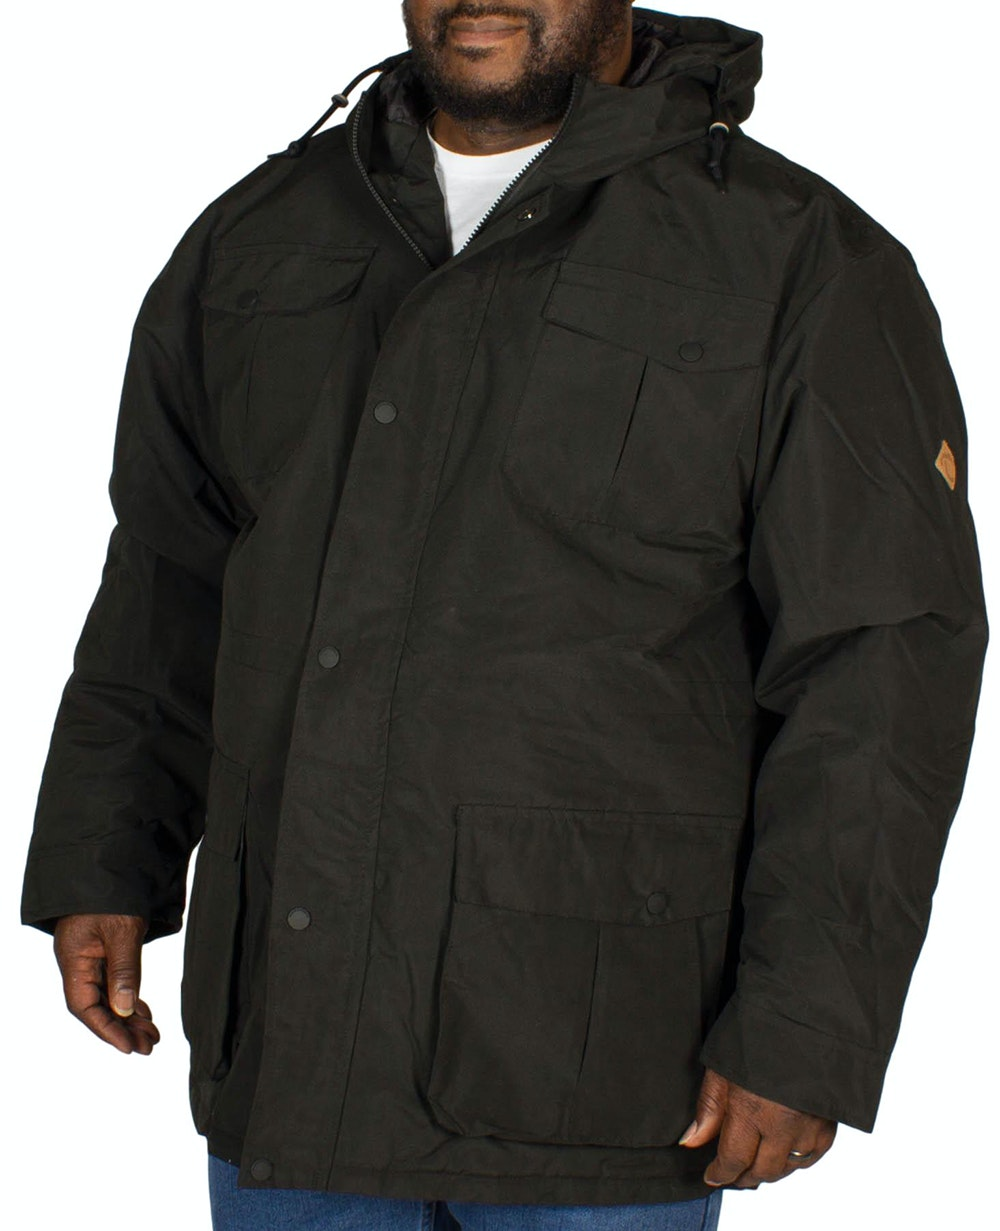 KAM Padded Hooded Jacket Black